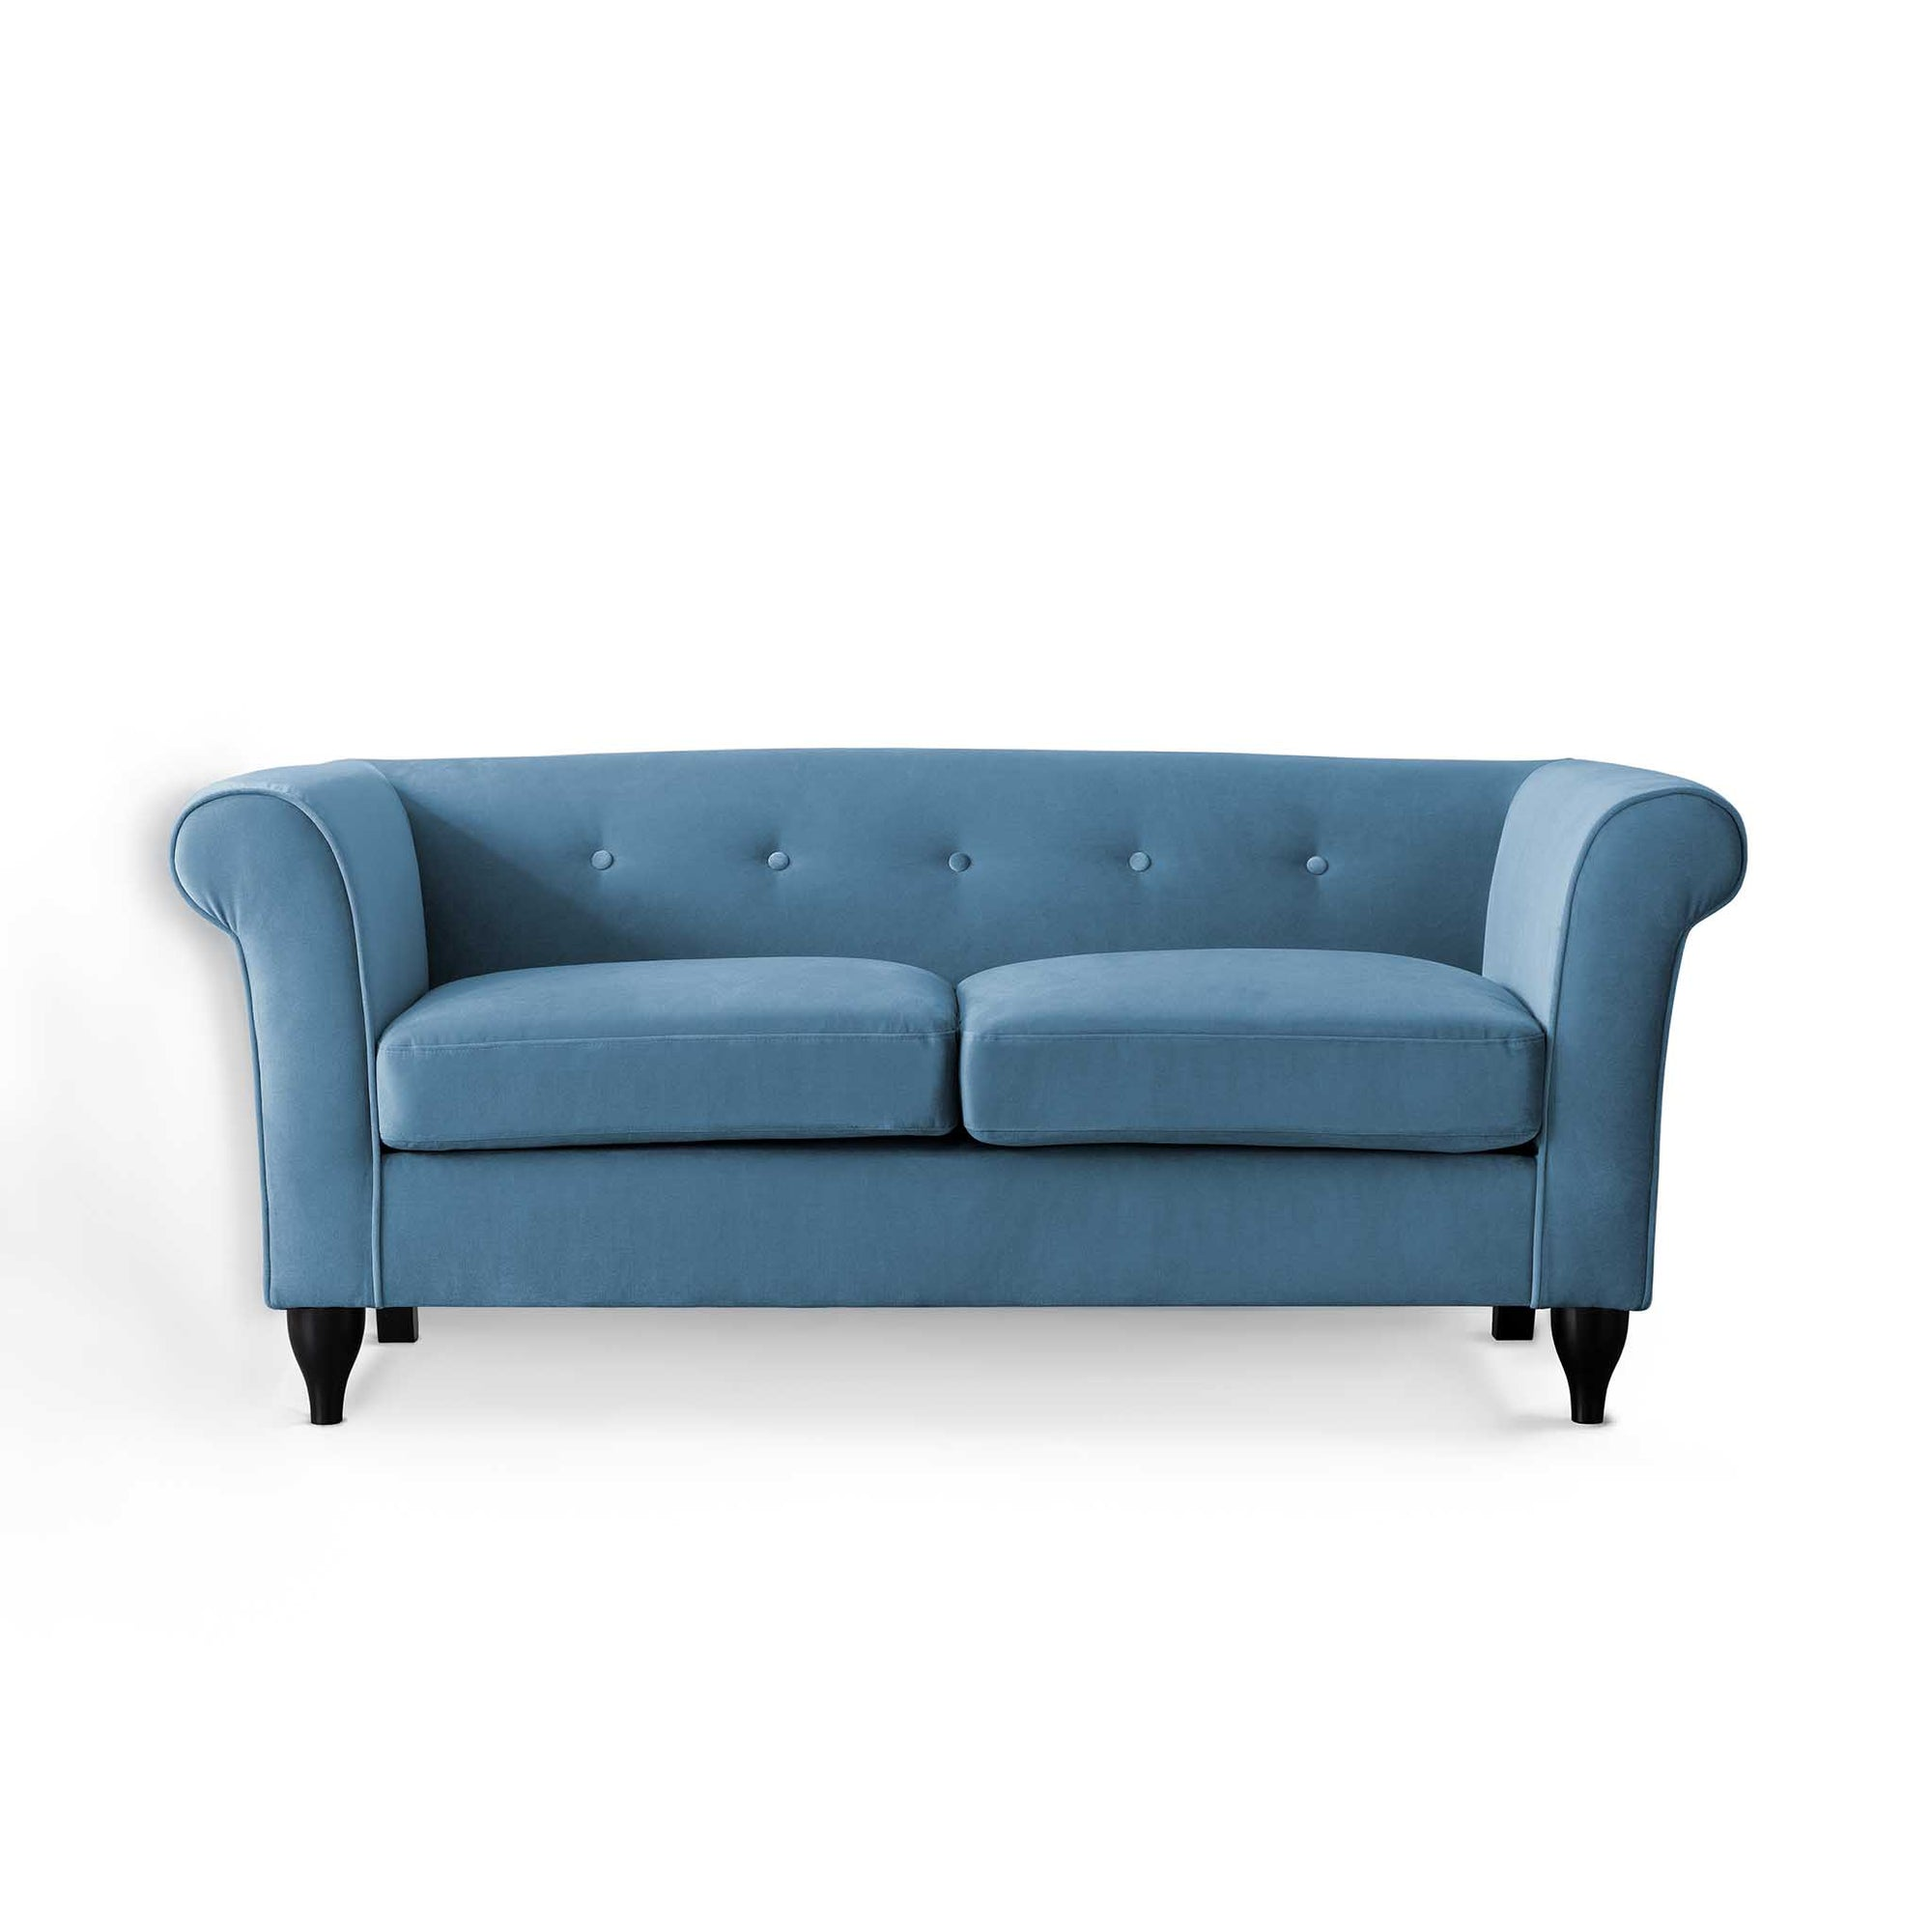 Monte Carlo Peacock 2 Seater Sofa by Roseland Furniture